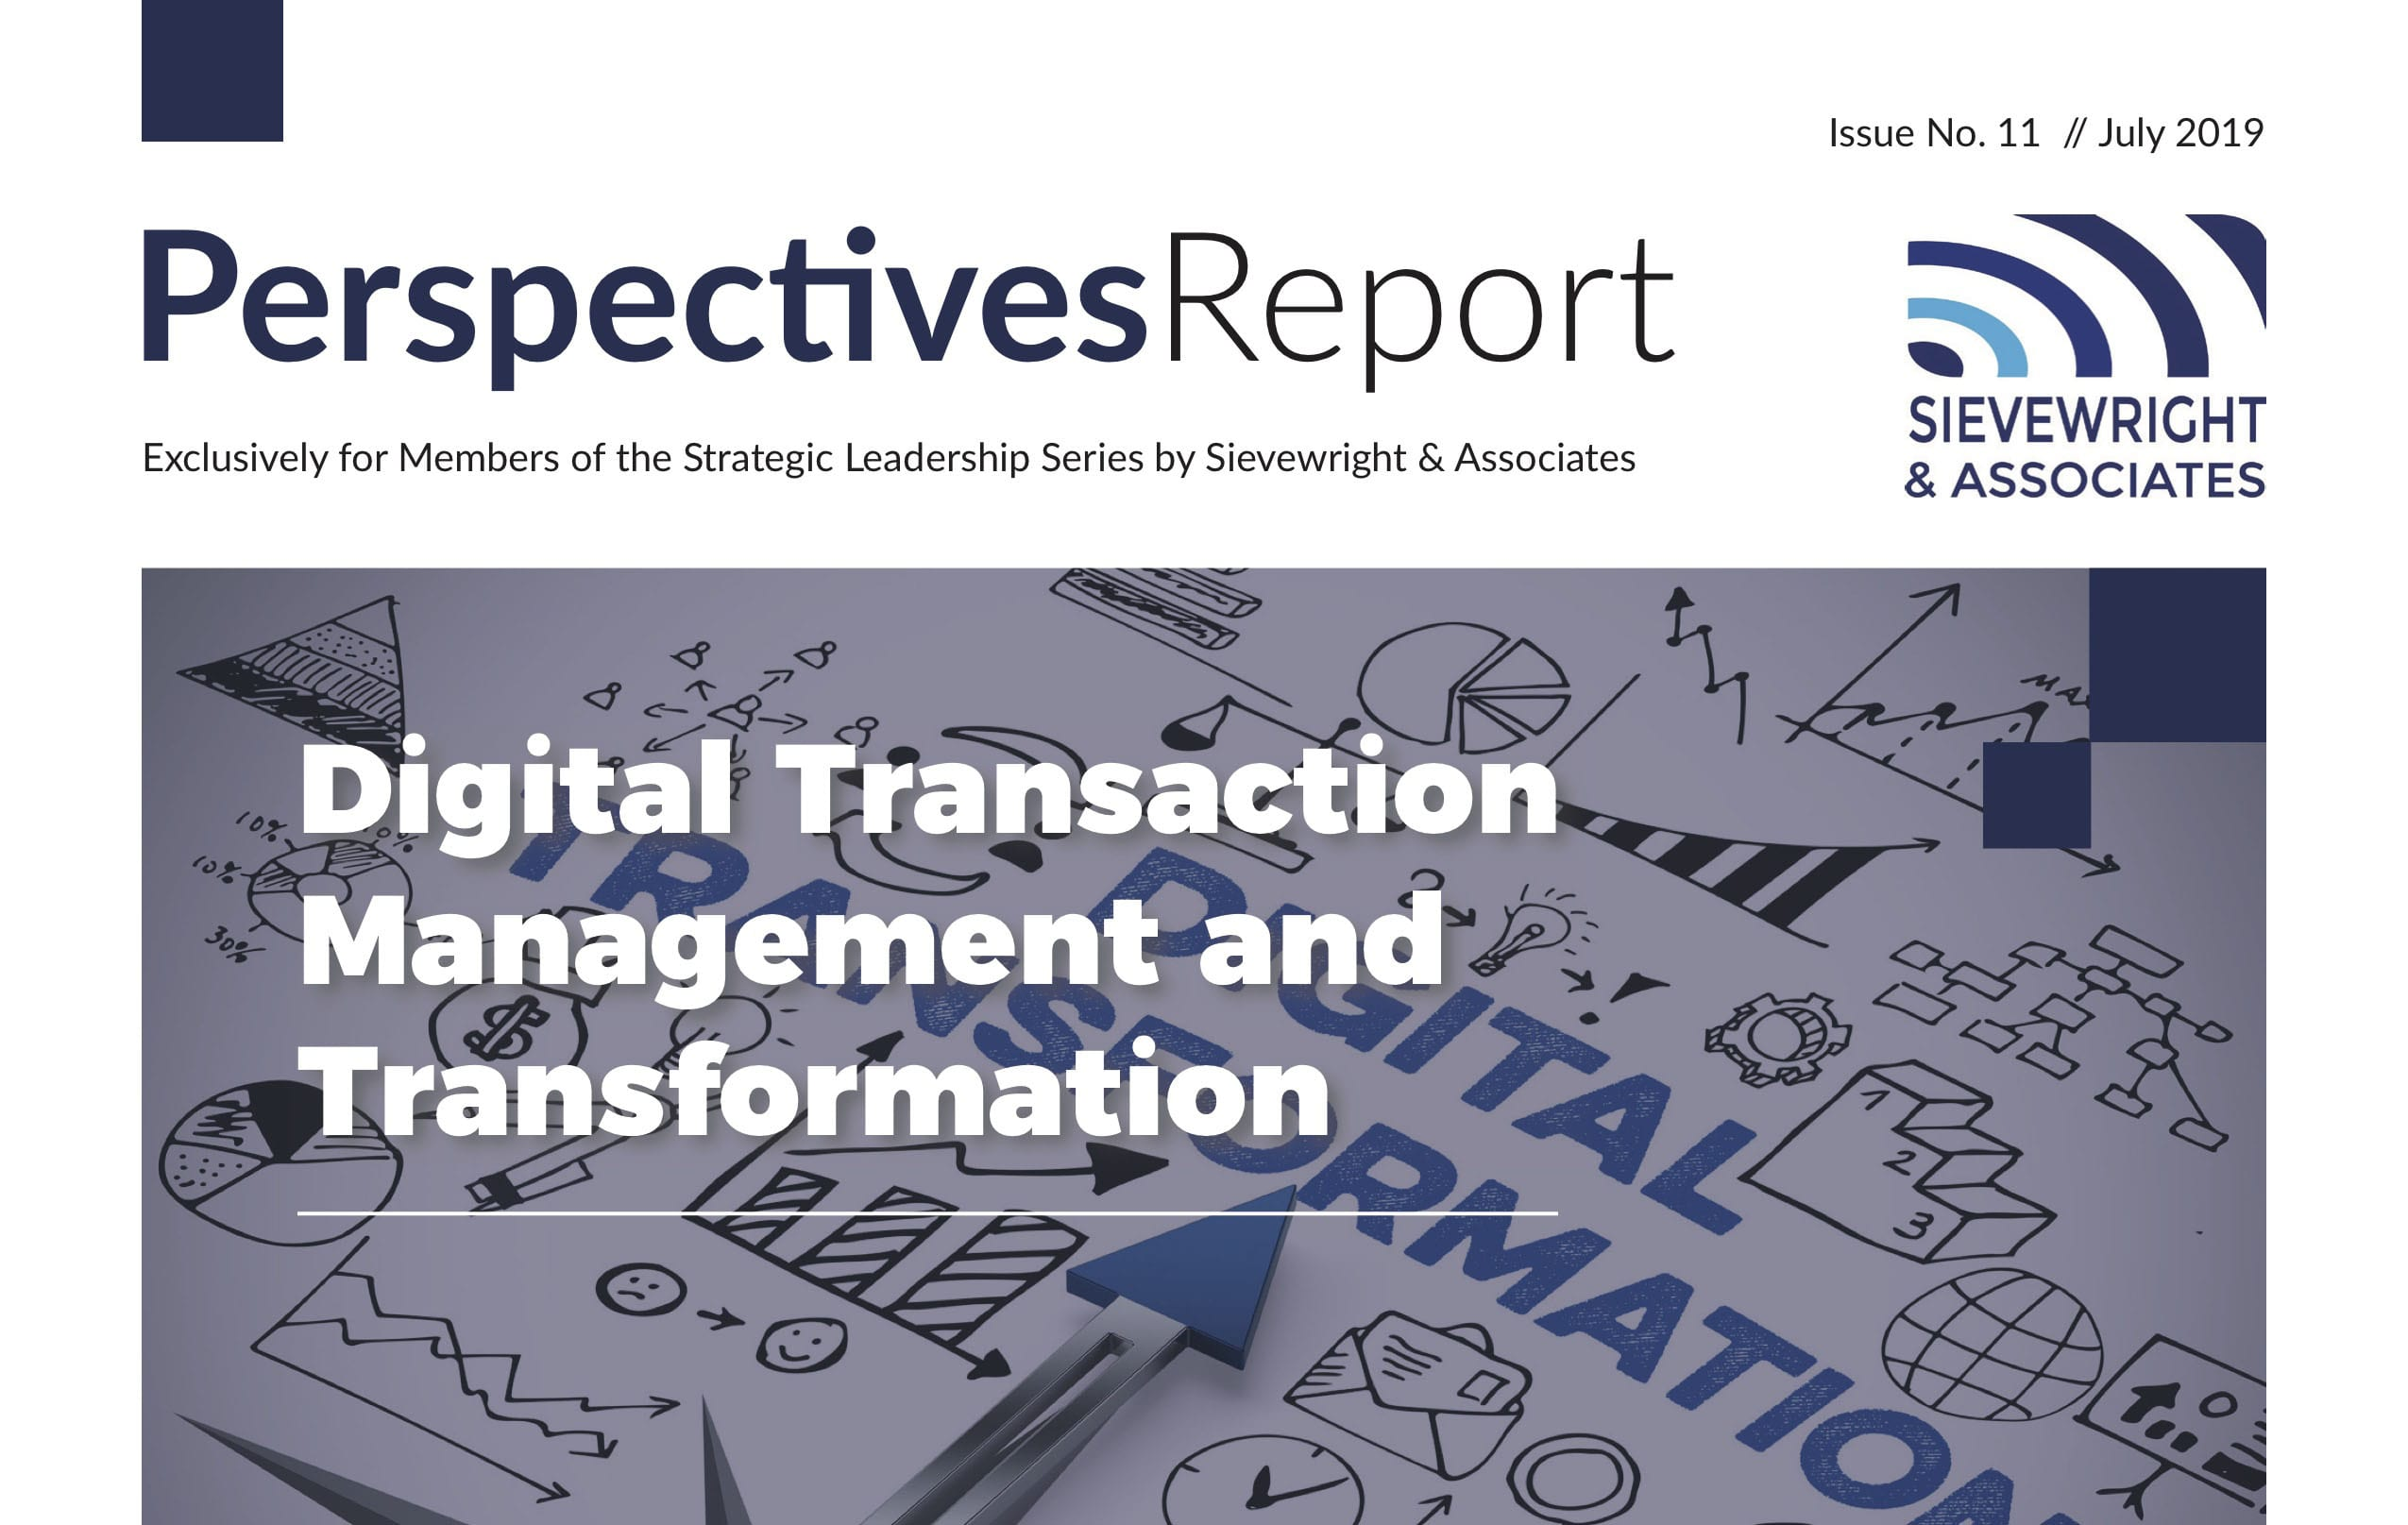 Perspectives Report Cover Image July 2019